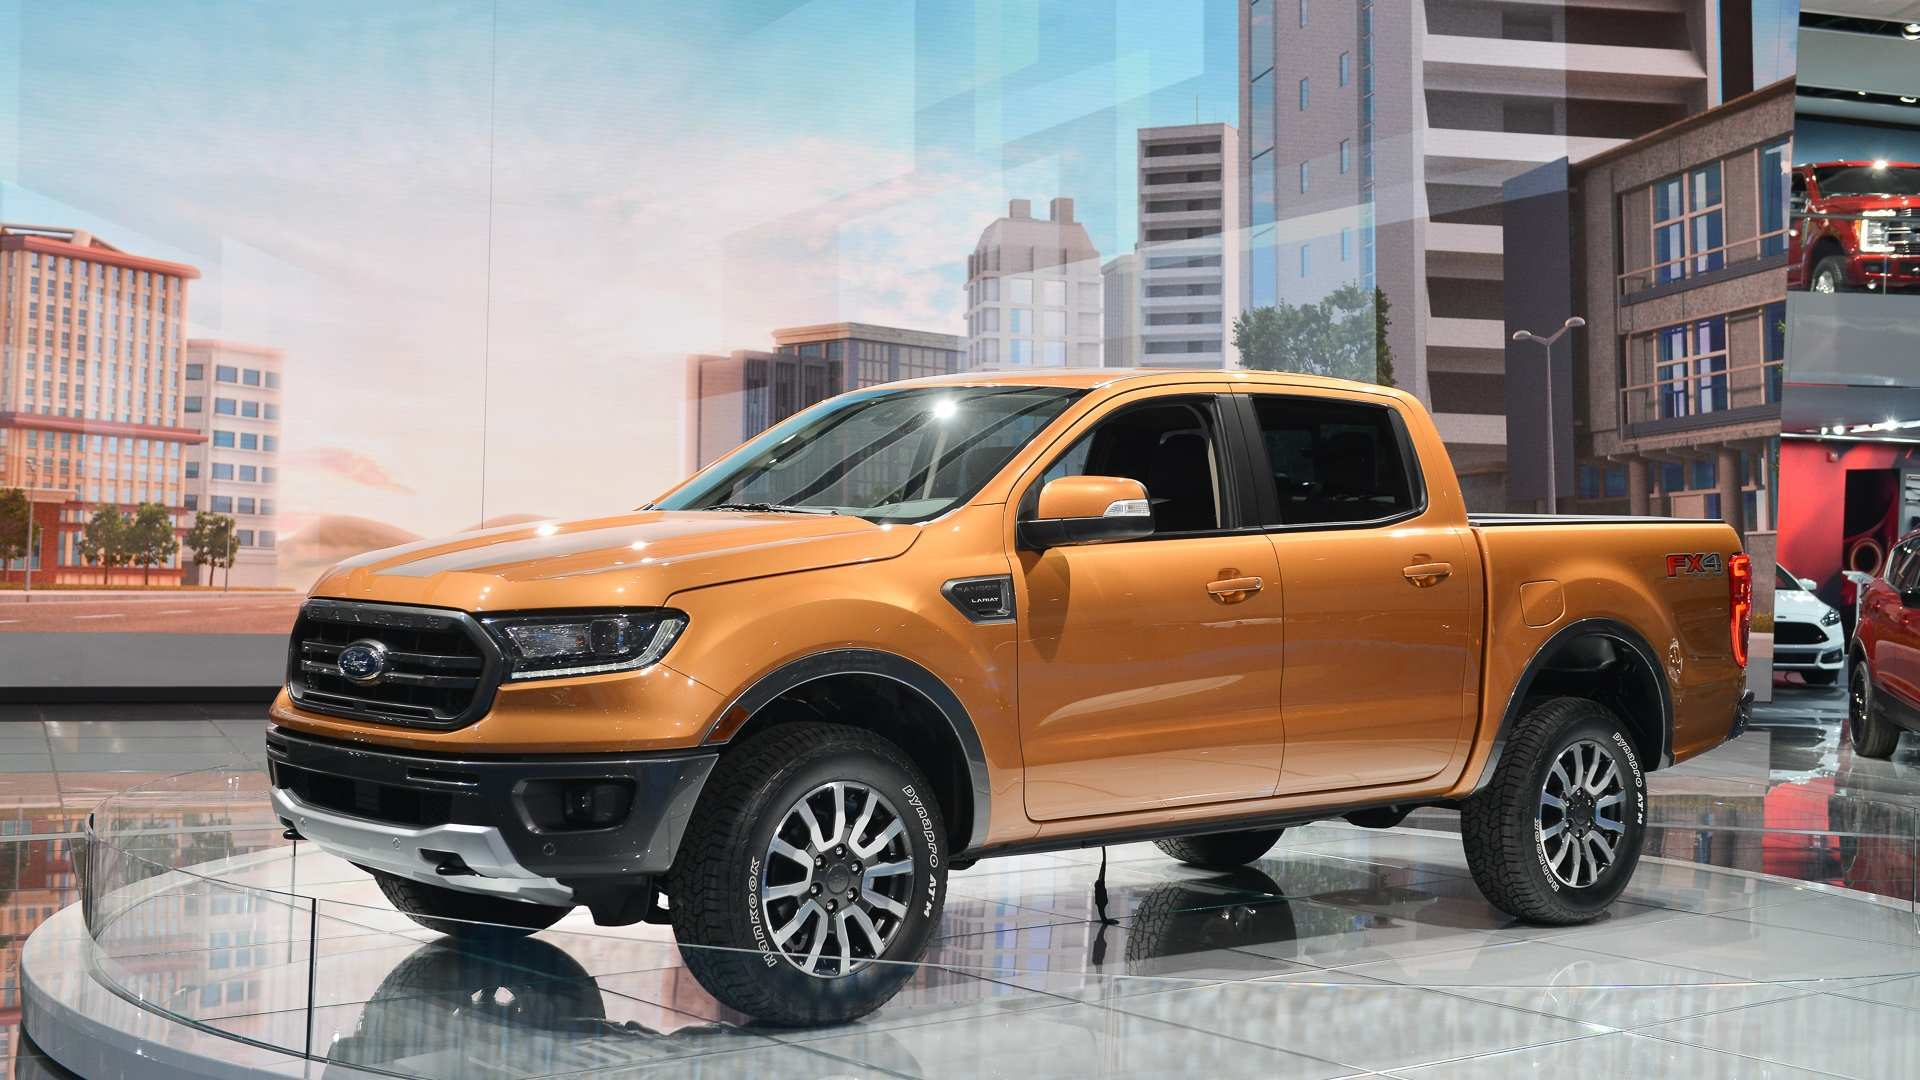 54 Great 2019 Ford Ranger Auto Show Review by 2019 Ford Ranger Auto Show